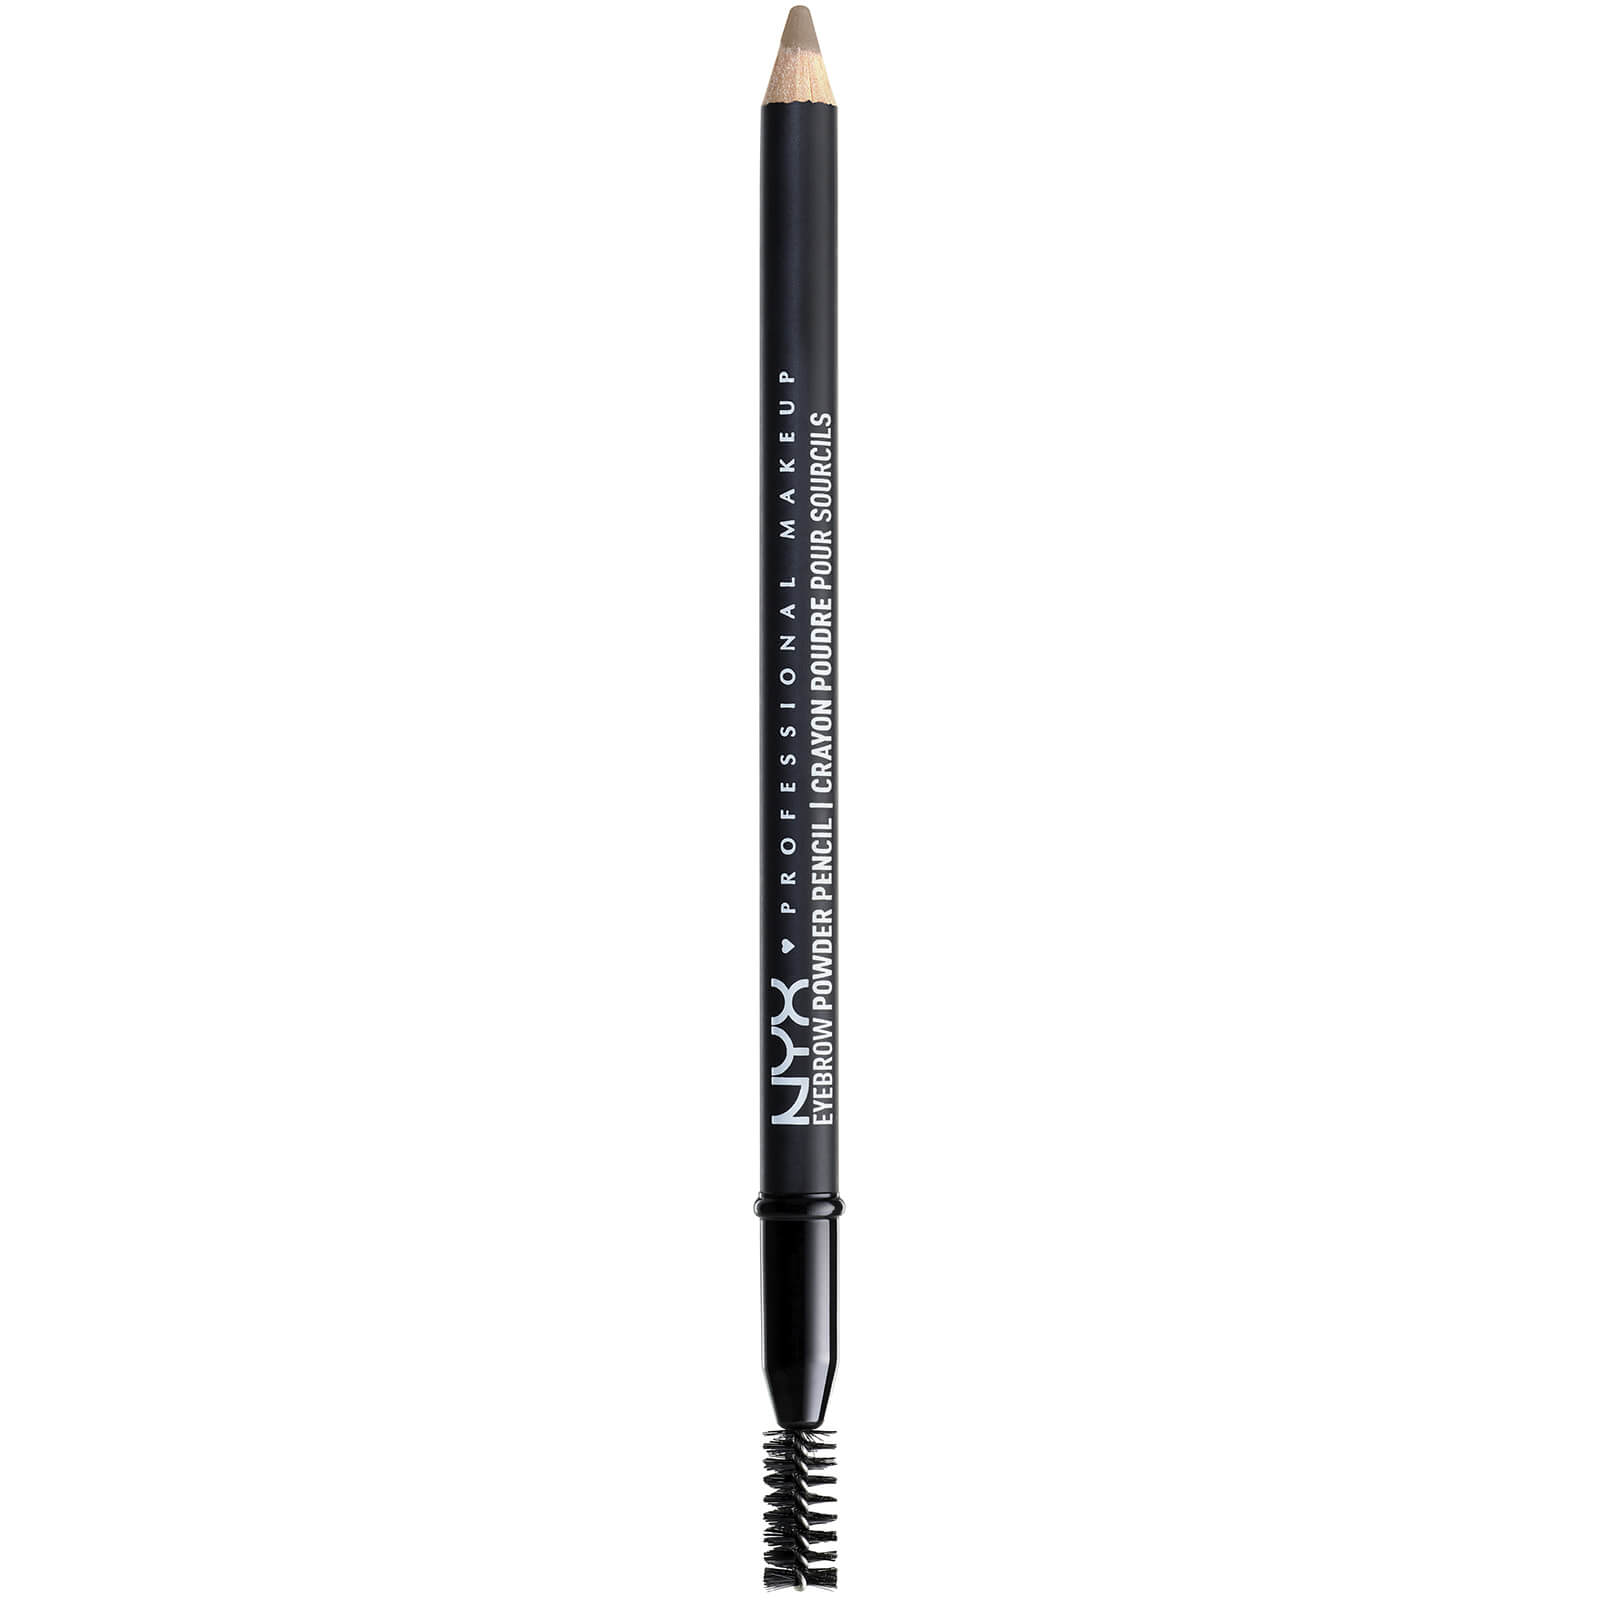 NYX Professional Makeup Eyebrow Powder Pencil (Various Shades) - Soft Brown